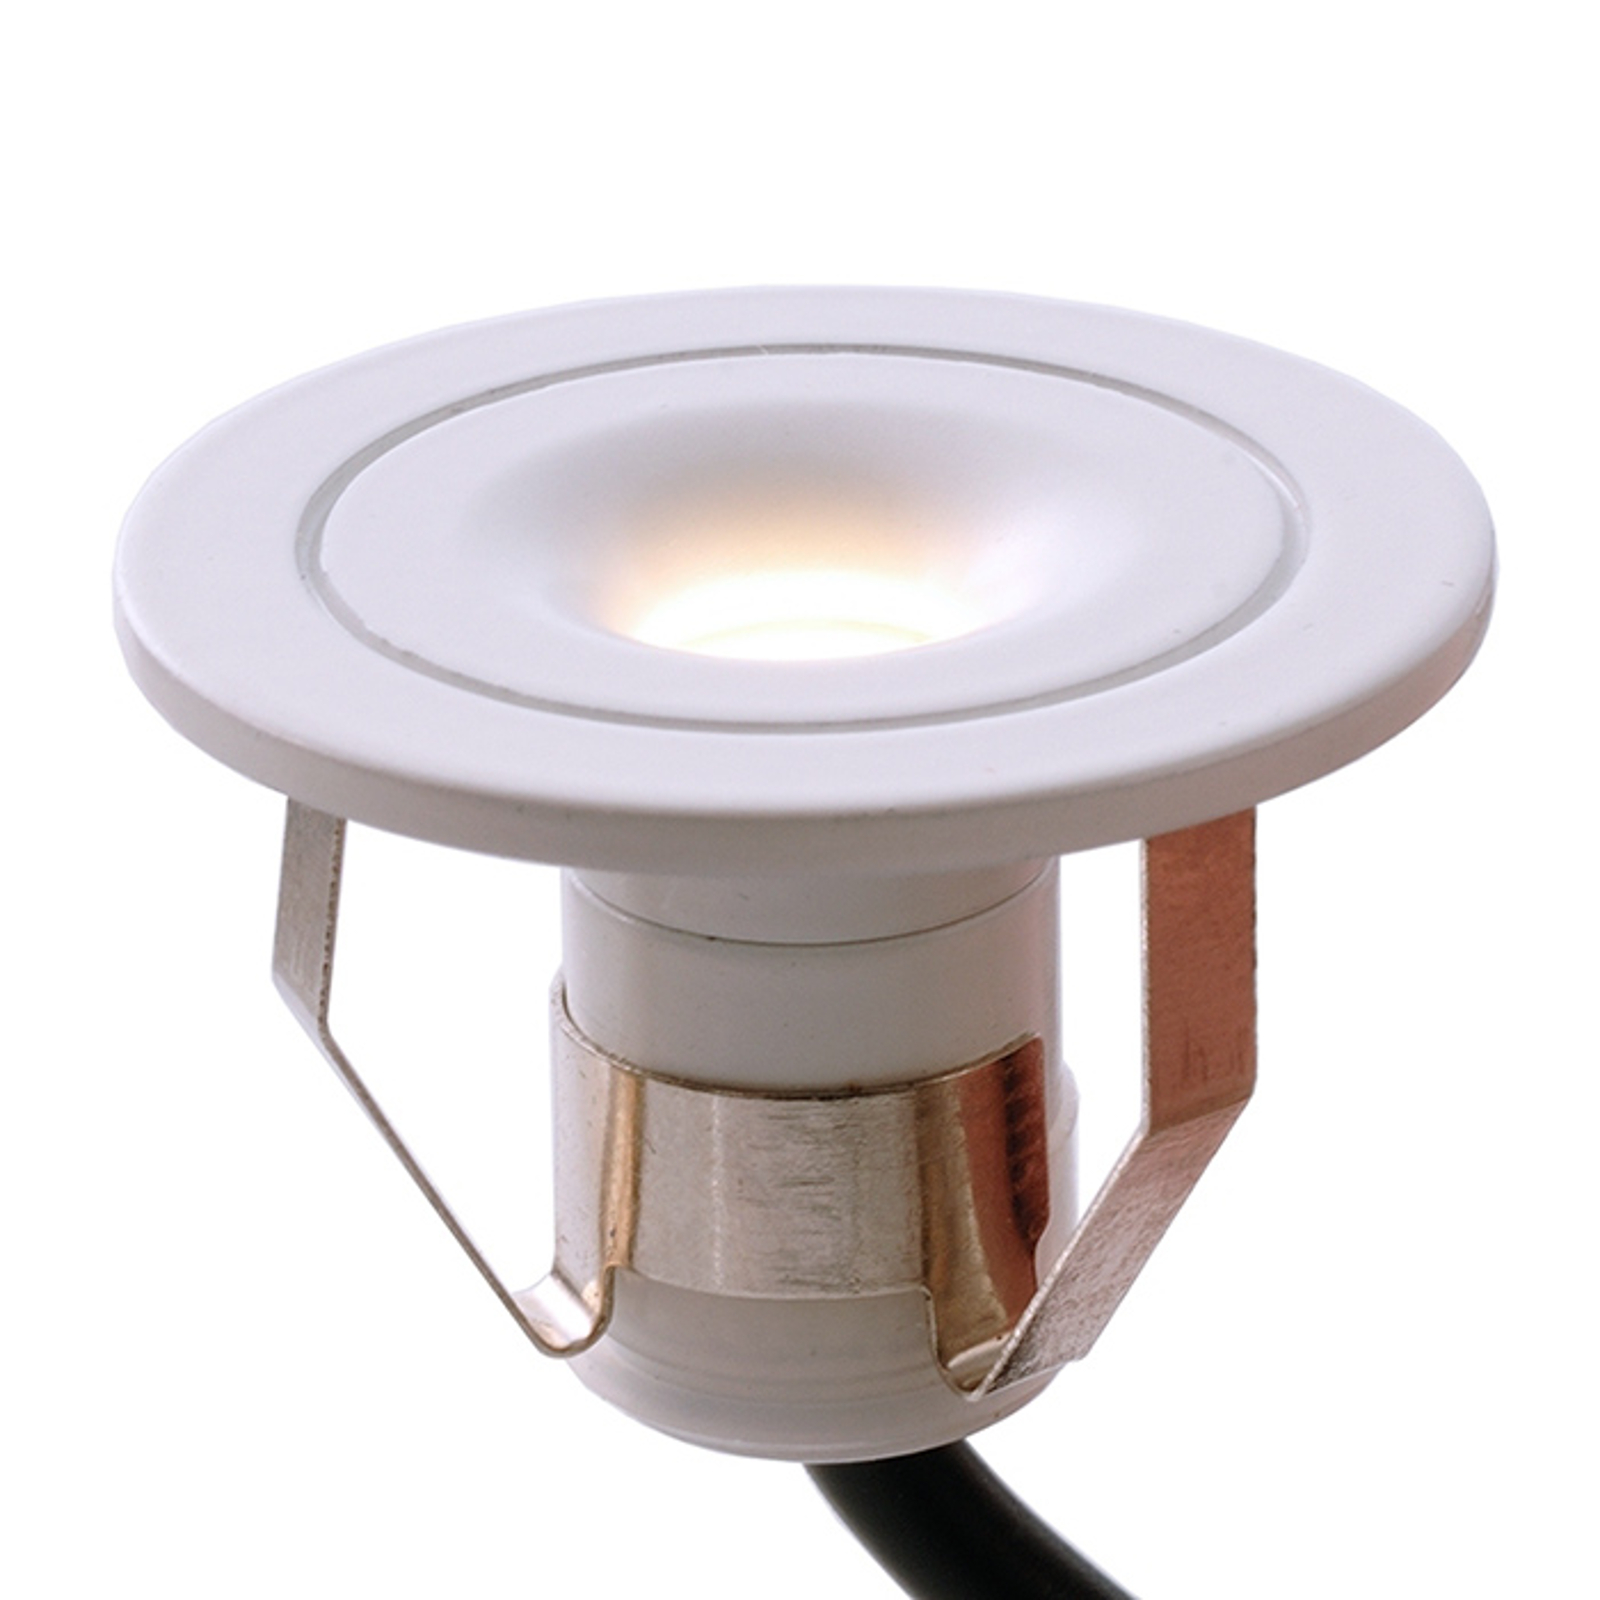 Small LED built-in lamp Punto Lumi_2500092_1